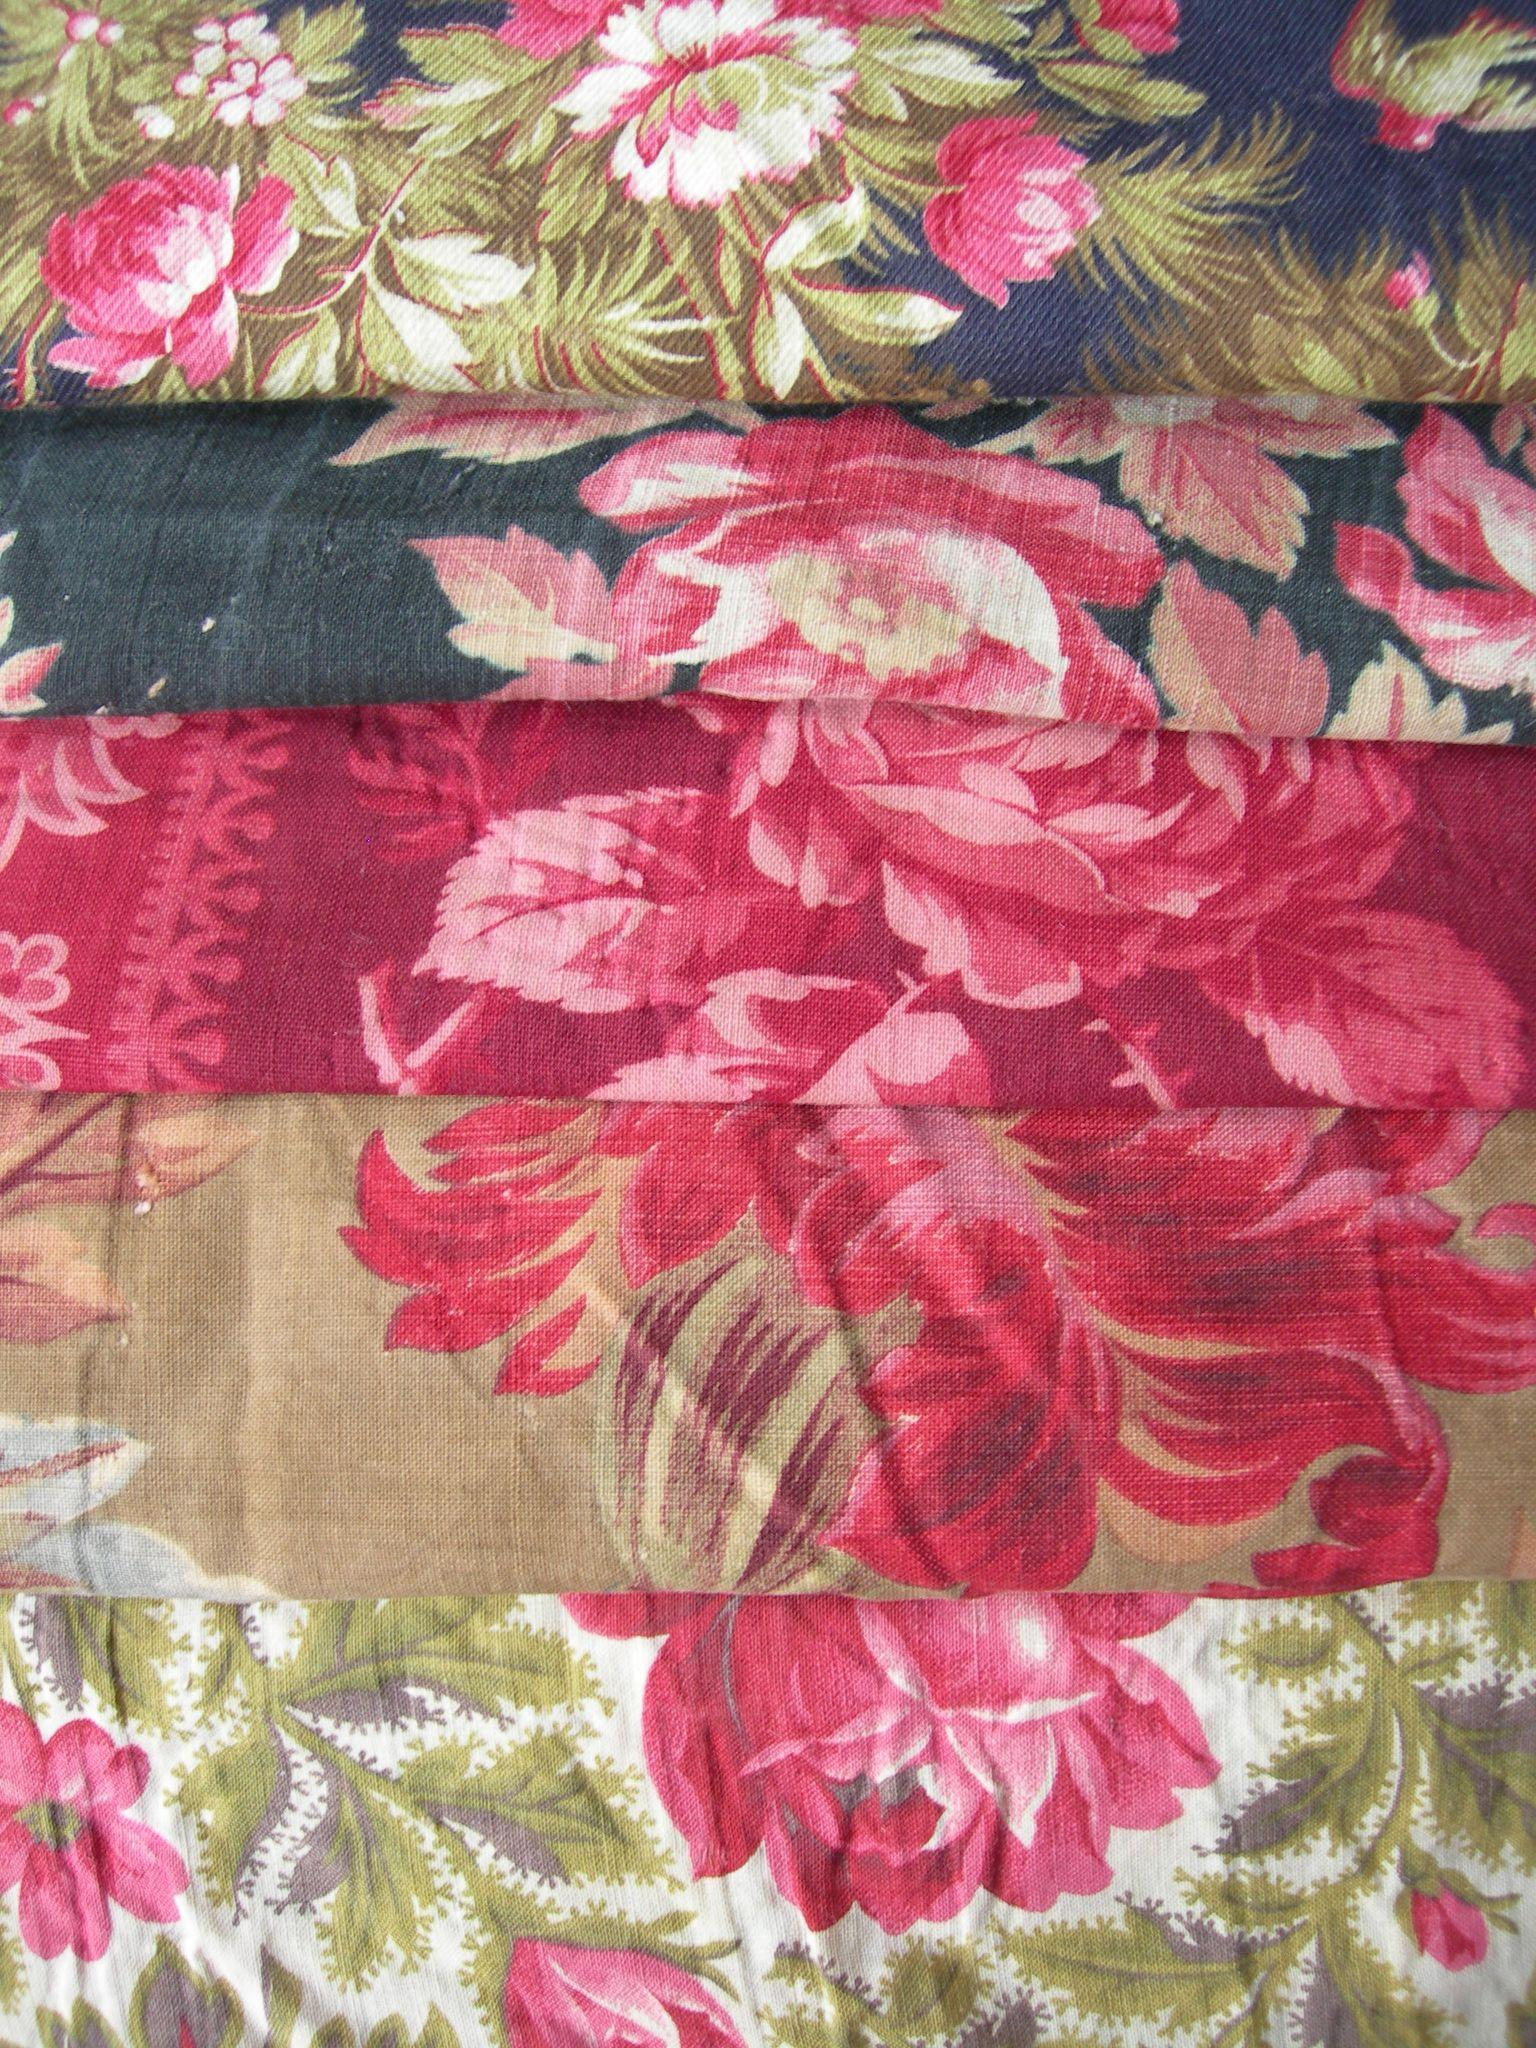 Collection 16 larger panels antique French 19th century cabbage roses prints fabric - quilts